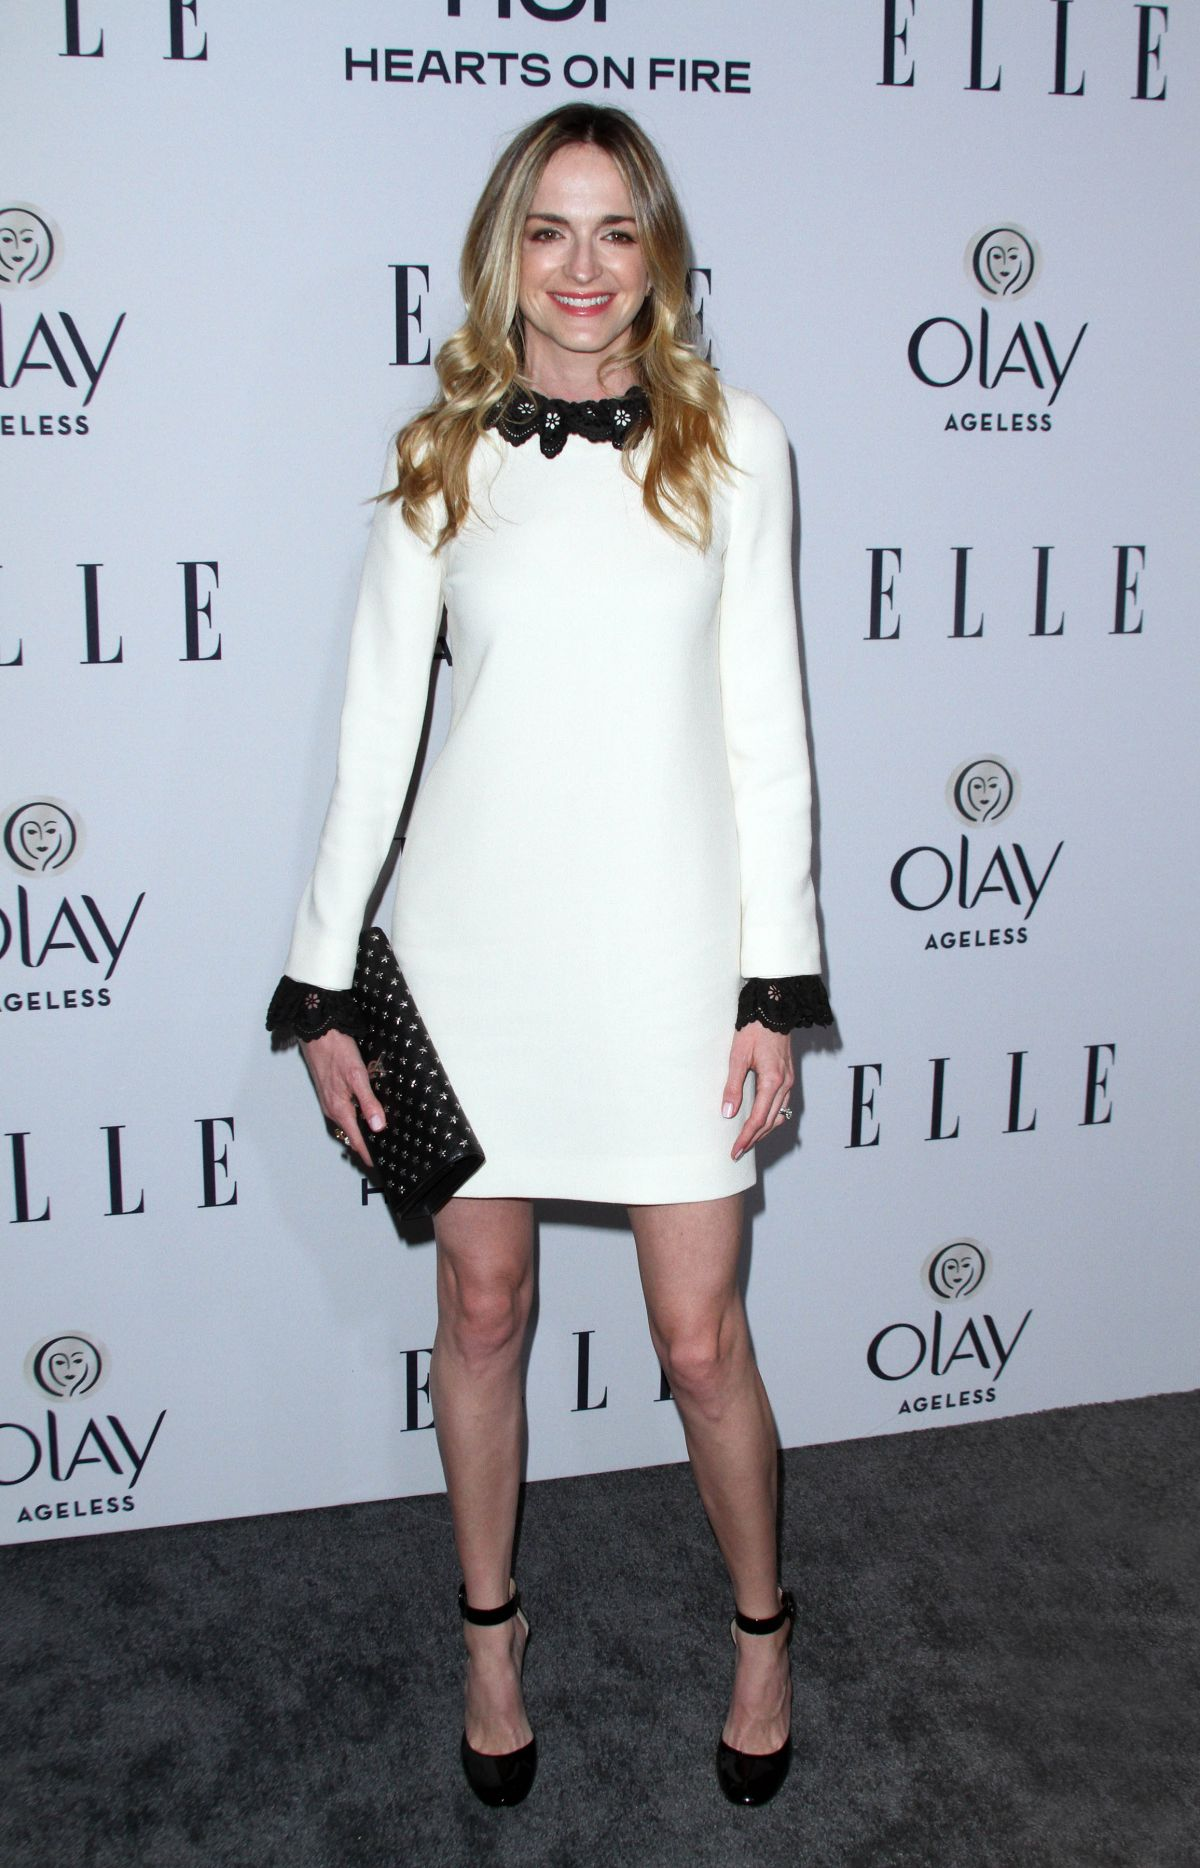 MOLLY MCNEARNEY at Elle's Women in Television 2016 Celebration in Los Angeles 01/20/2016